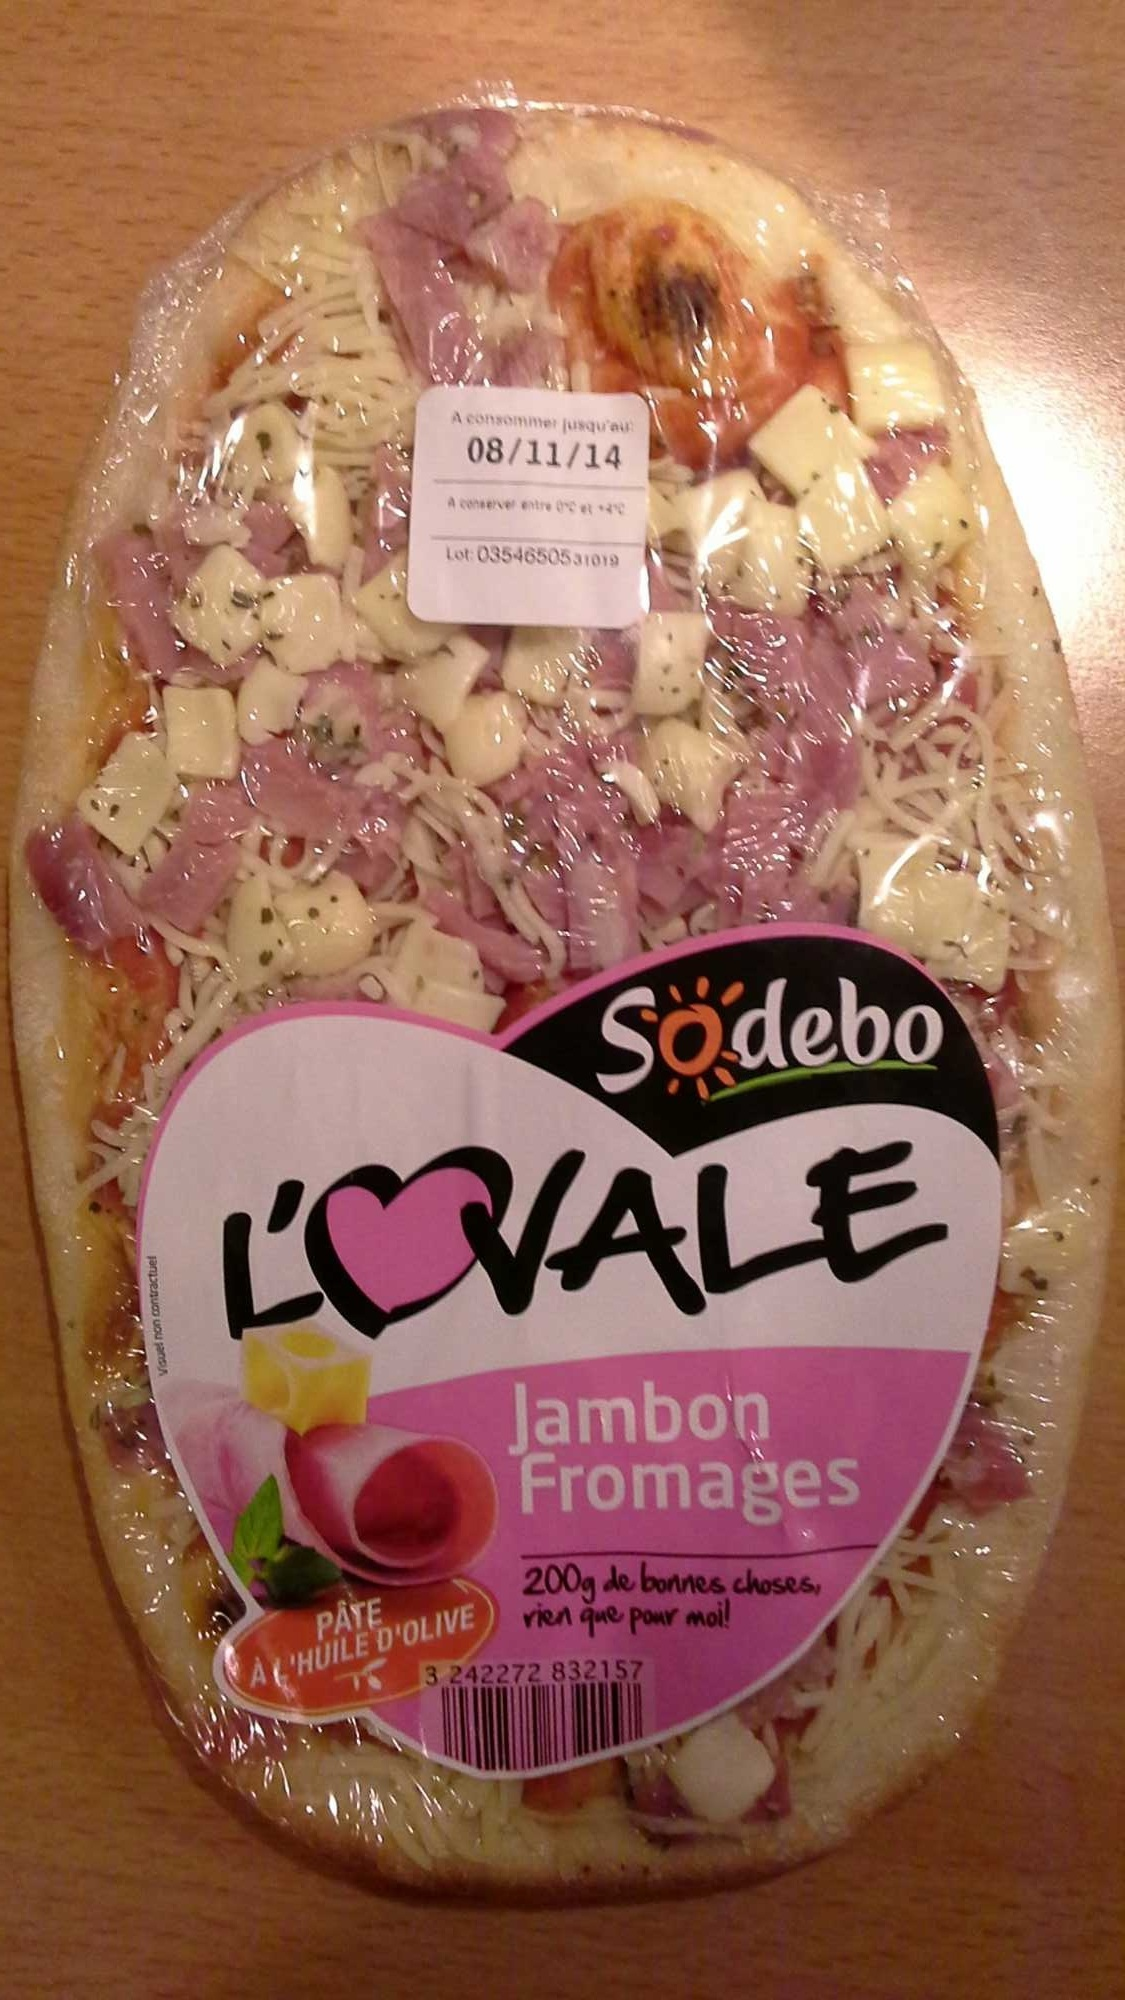 L'Ovale Jambon Fromages - Product